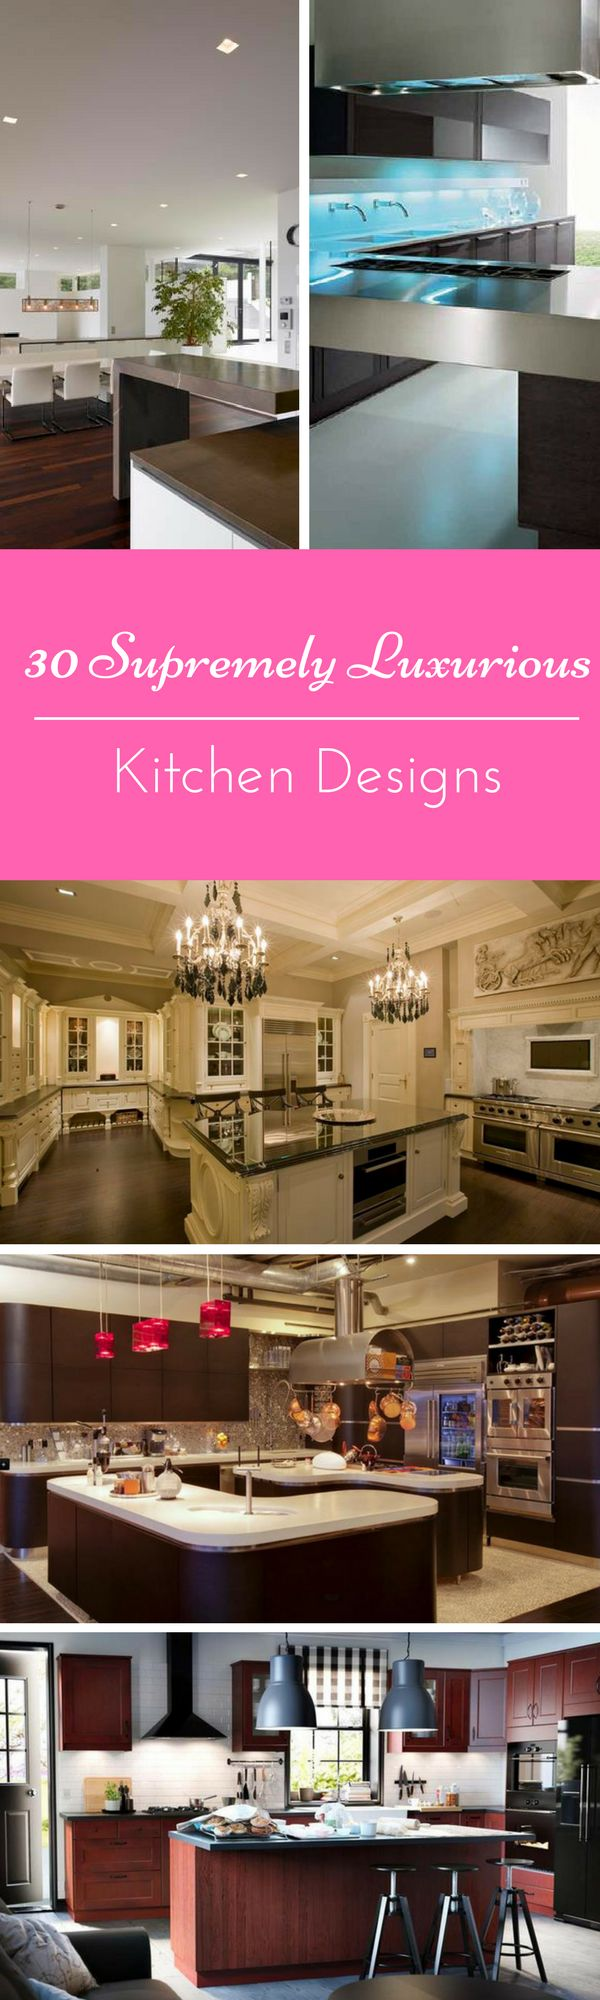 1095 best kitchen designs and ideas images on pinterest dream